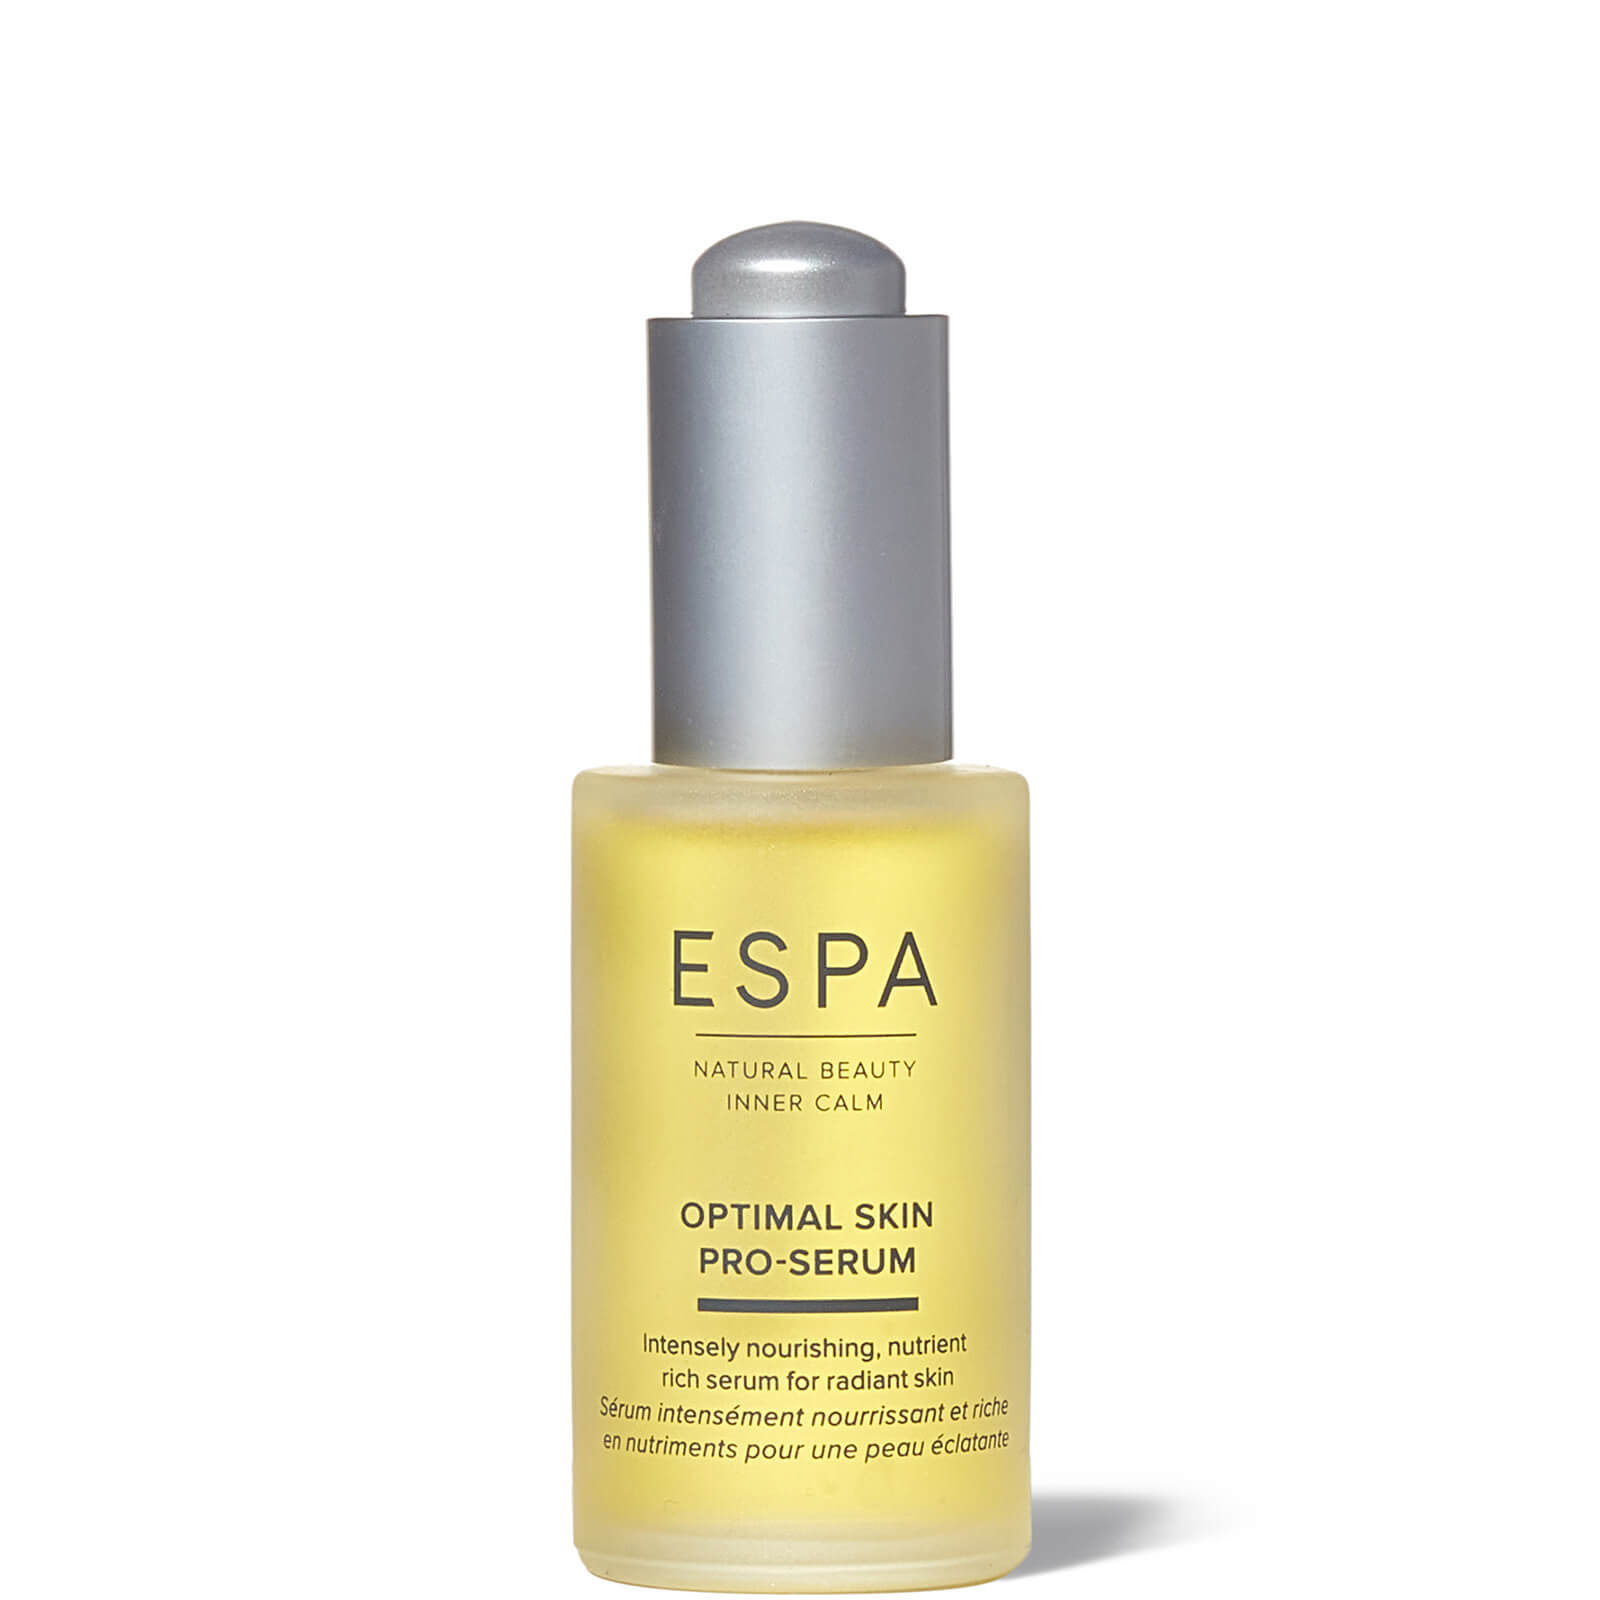 Espa OPTIMAL SKIN PRO-SERUM 30ML